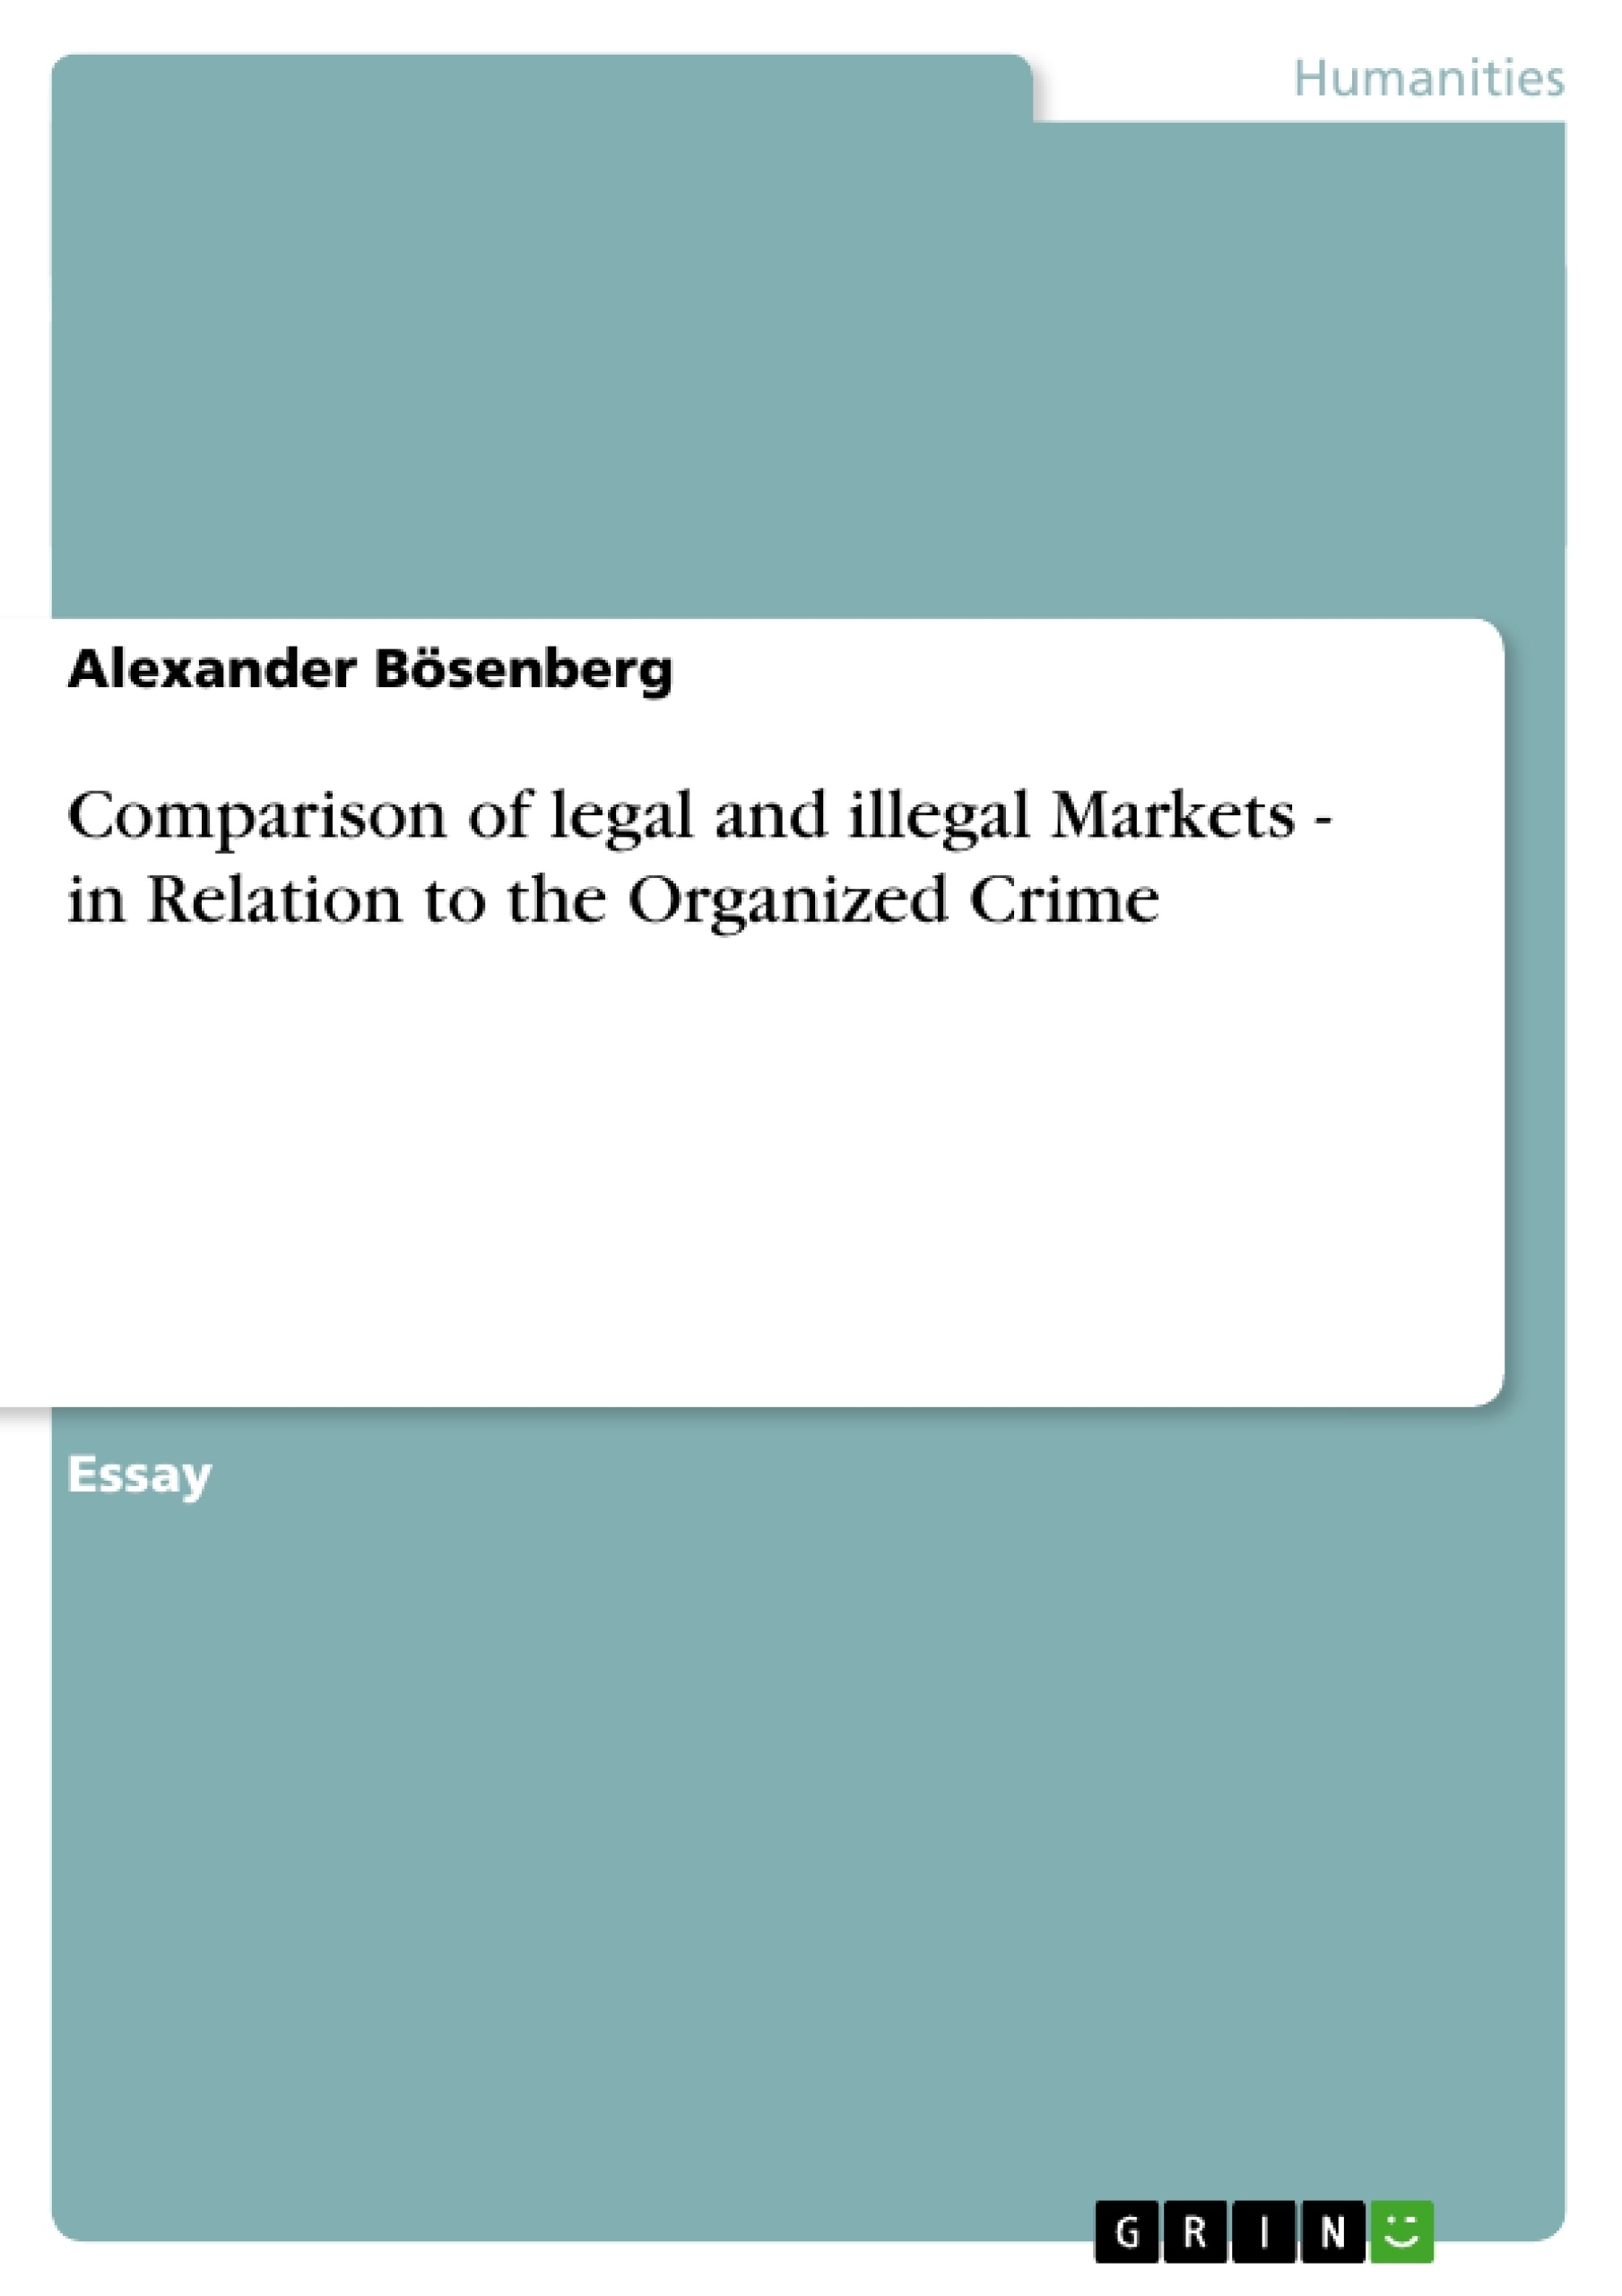 Title: Comparison of legal and illegal Markets  -  in Relation to the Organized Crime